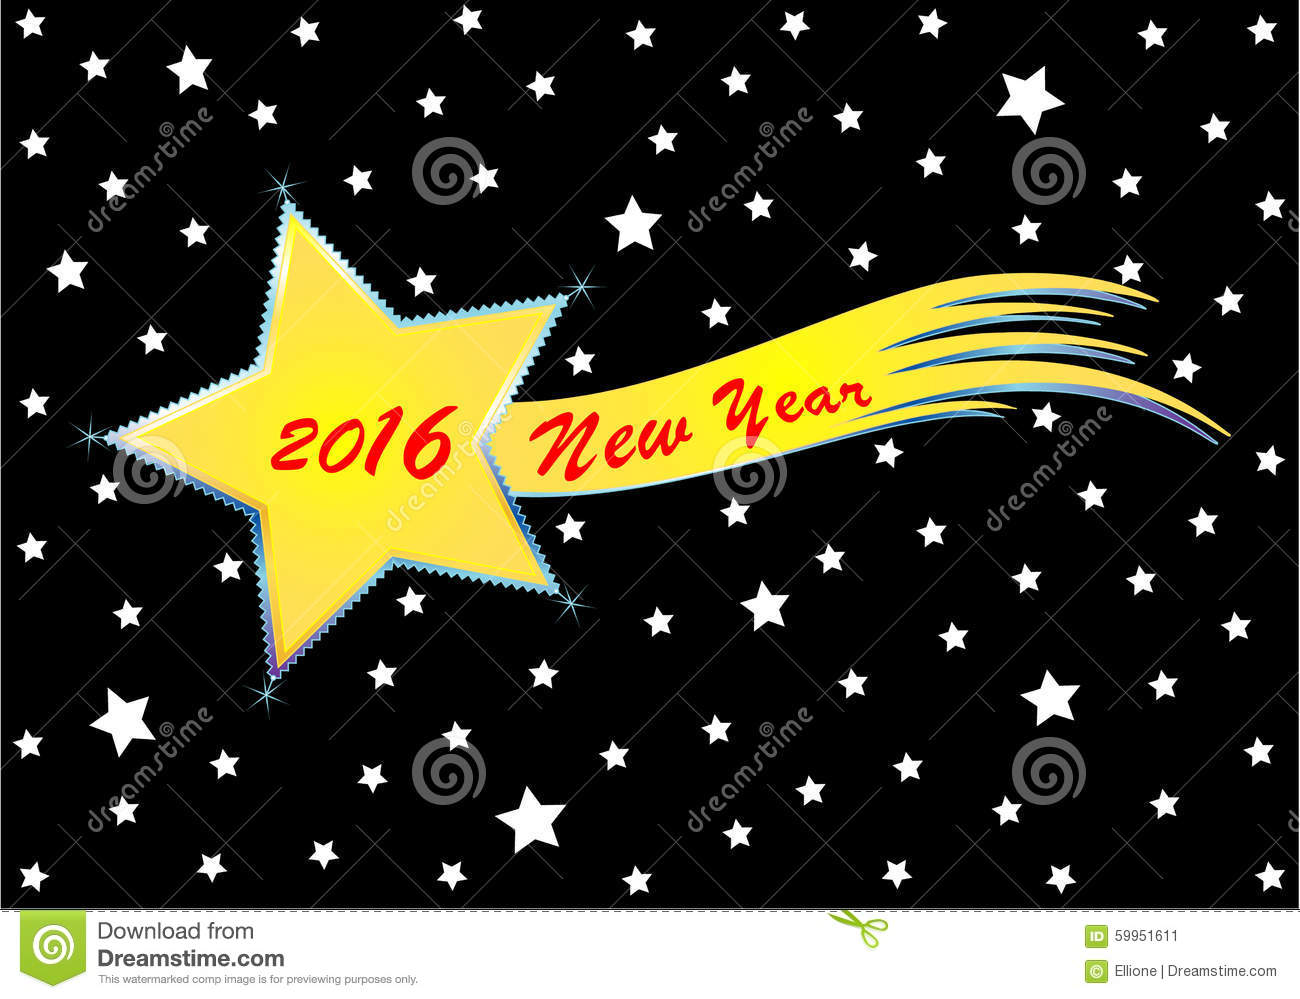 Happy Home Design Cheats New Year 2016 Illustrations 28 Images Happy New Year